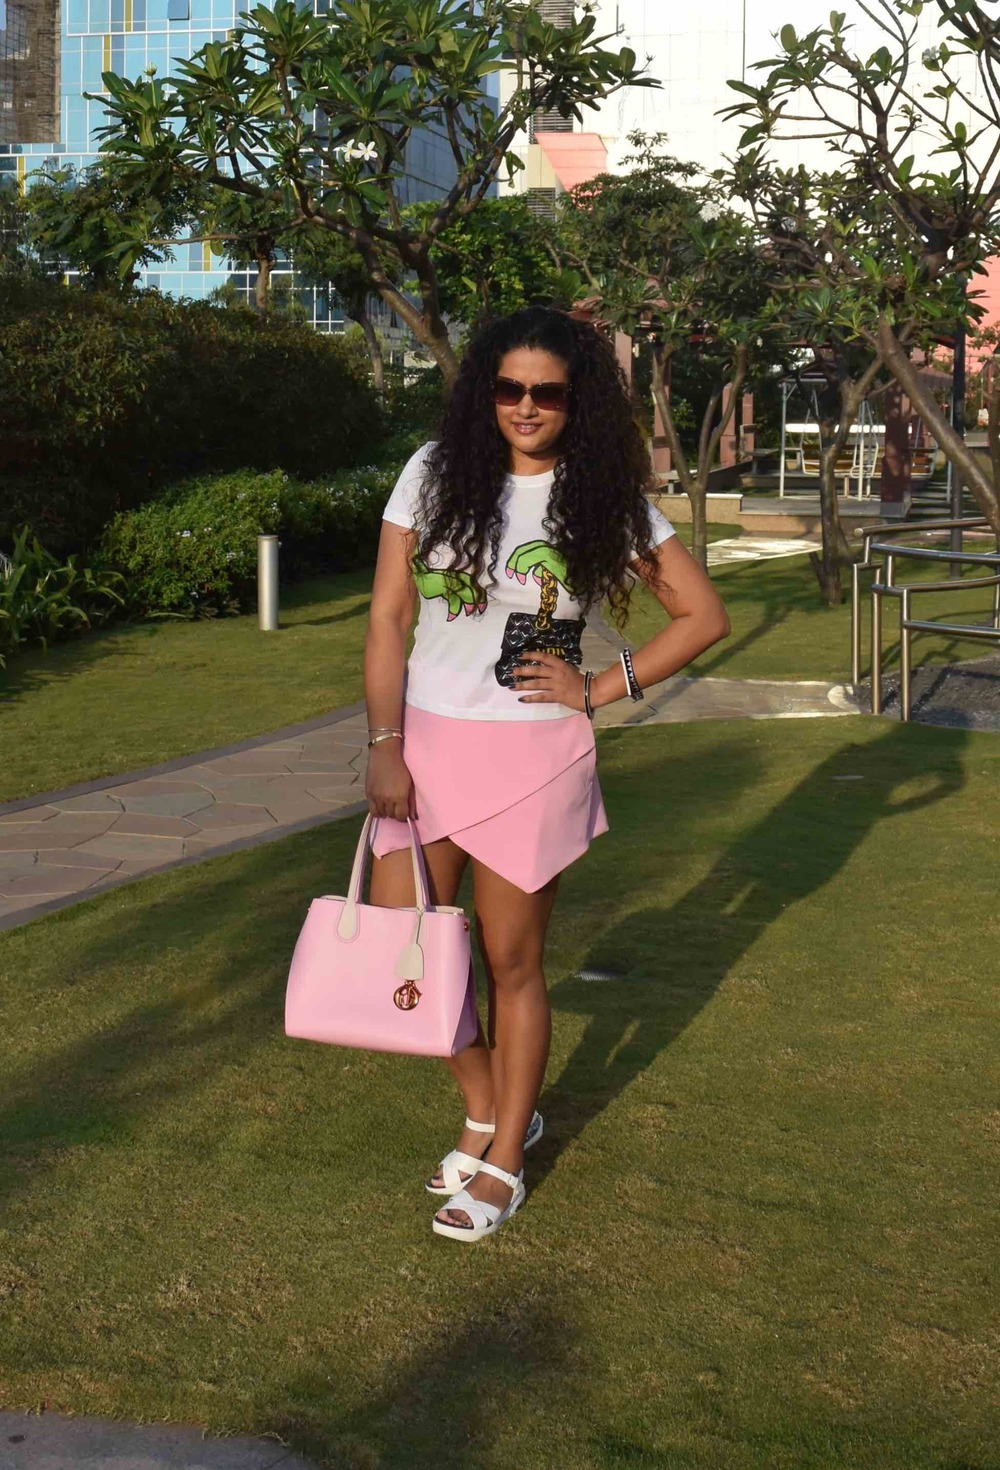 Skort - Asos, T-Shirt - Moschino, Bag - Dior, Sunglasses - Prada, Bangles - Furla, Sandals - Marc by Marc Jacobs